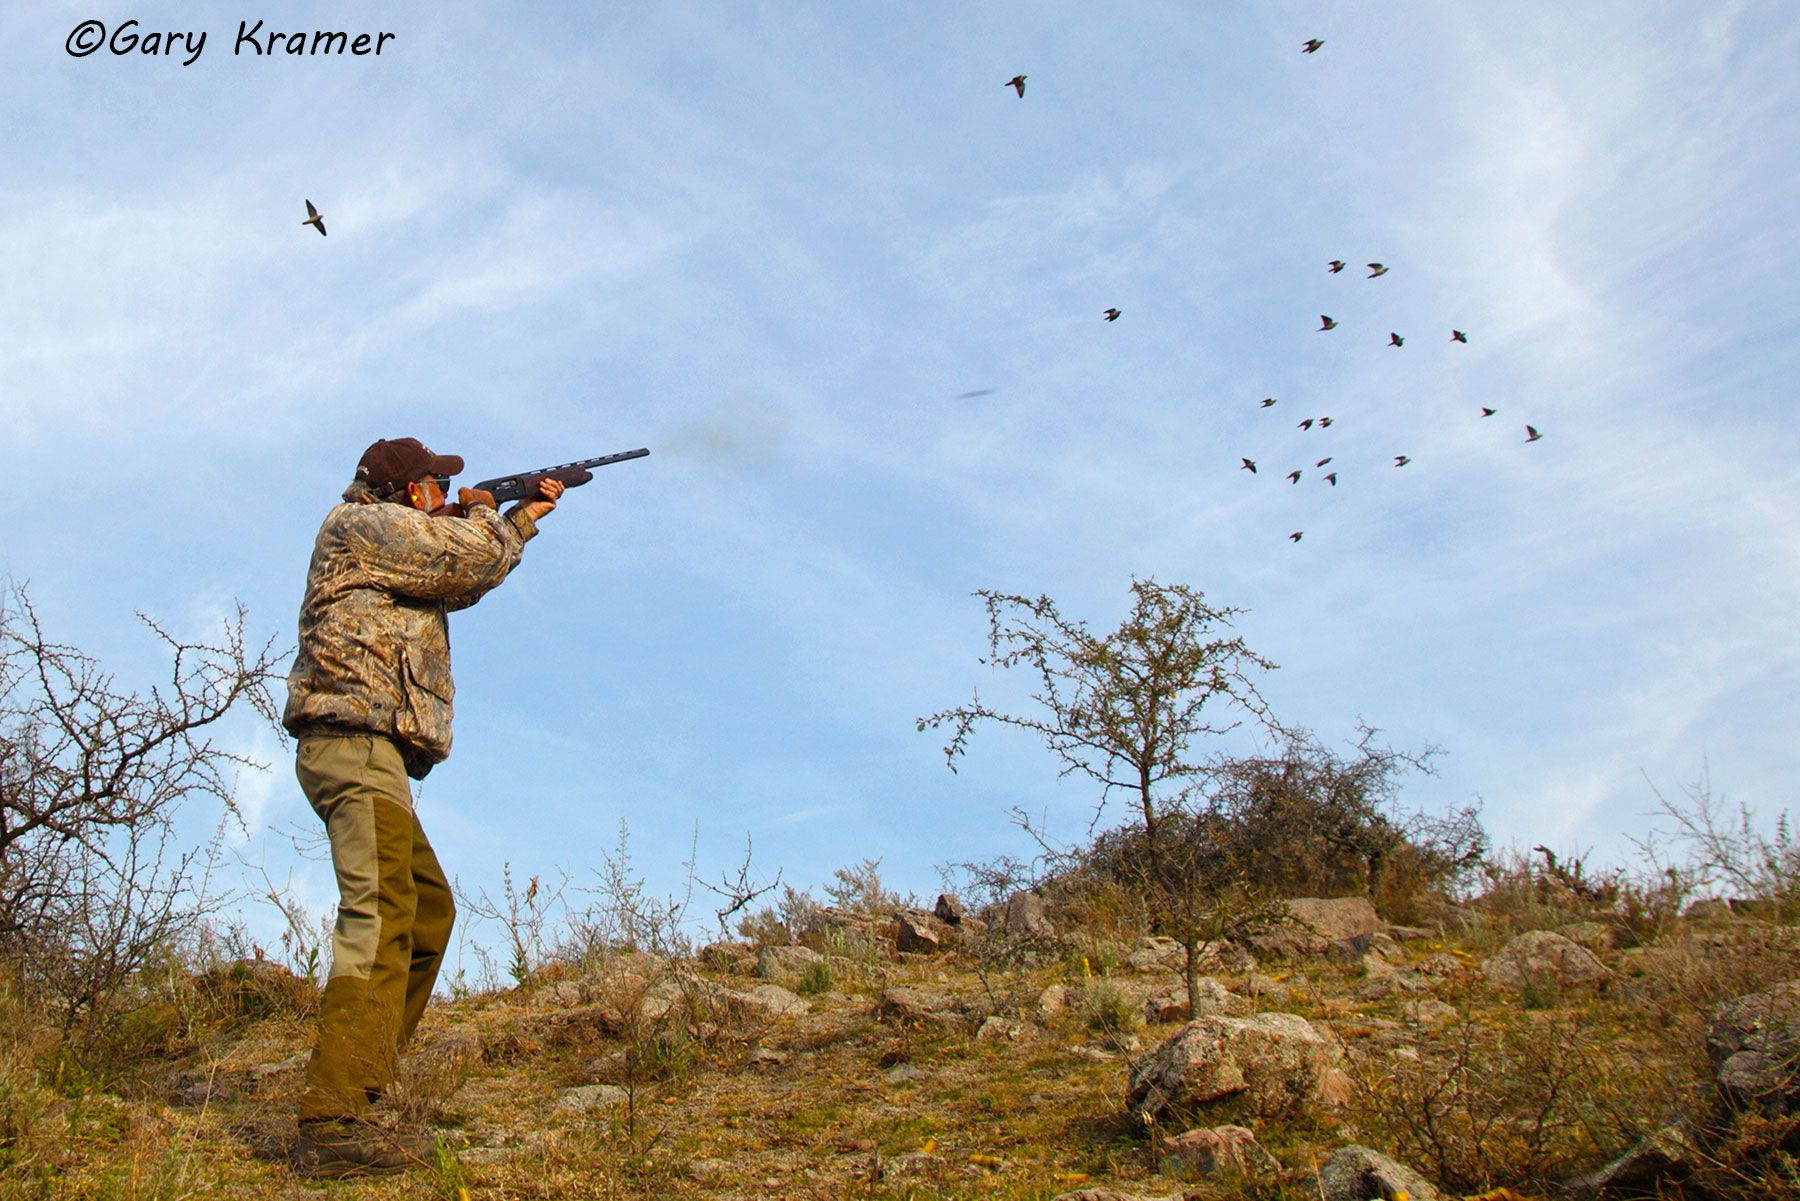 Hunter shooting at Eared Dove, Argentina  - SHdsb#138d